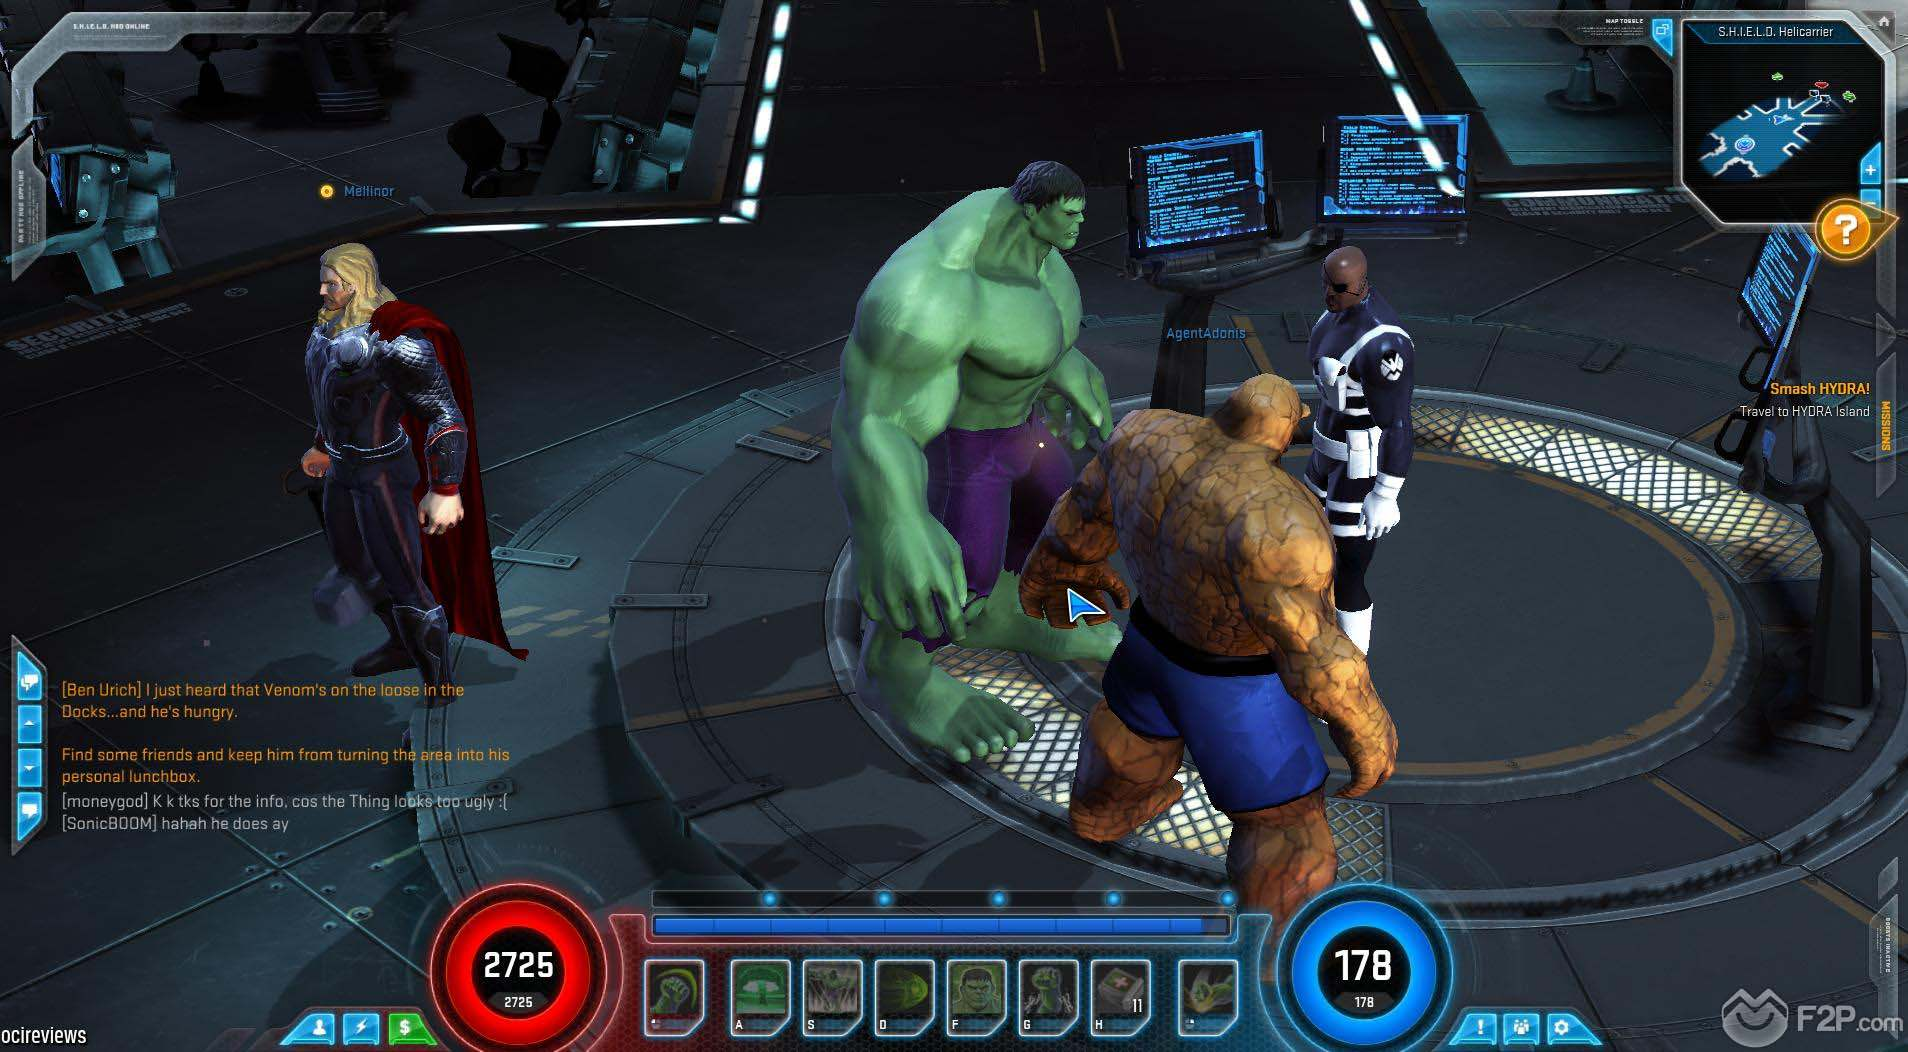 play free marvel games